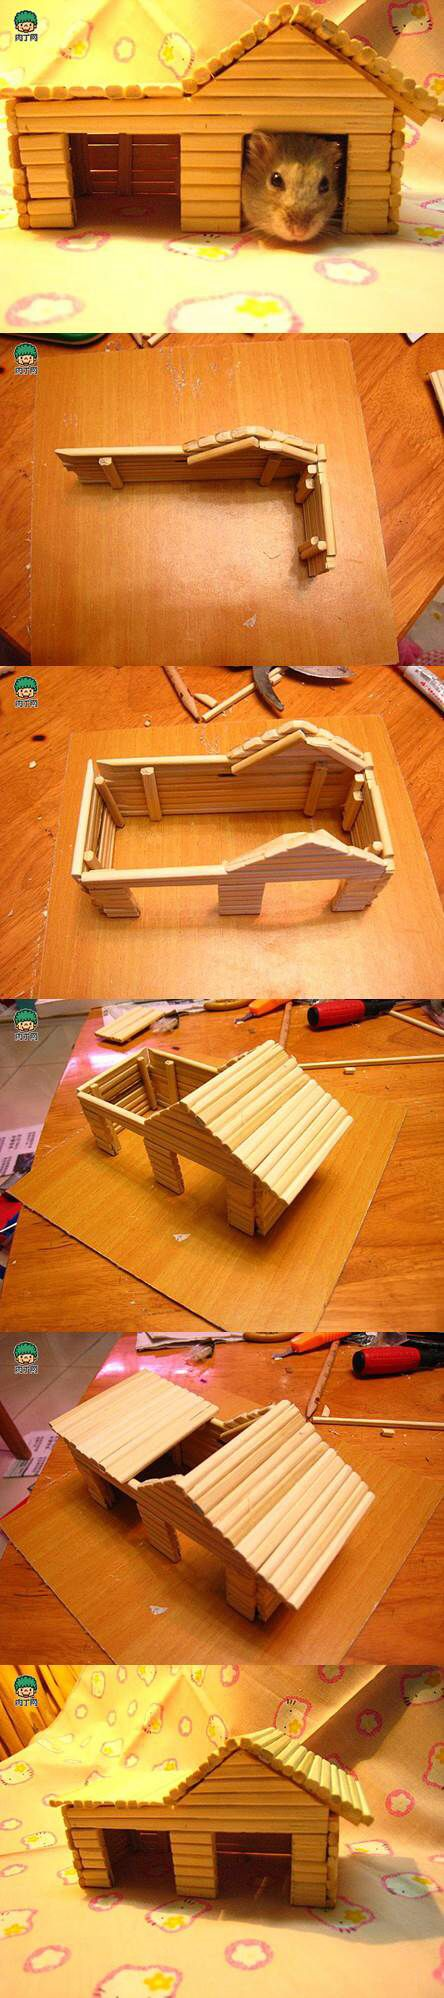 Image from http://www.icreativeideas.com/wp-content/uploads/2014/02/DIY-Hamster-House-with-Chopsticks-2.jpg.